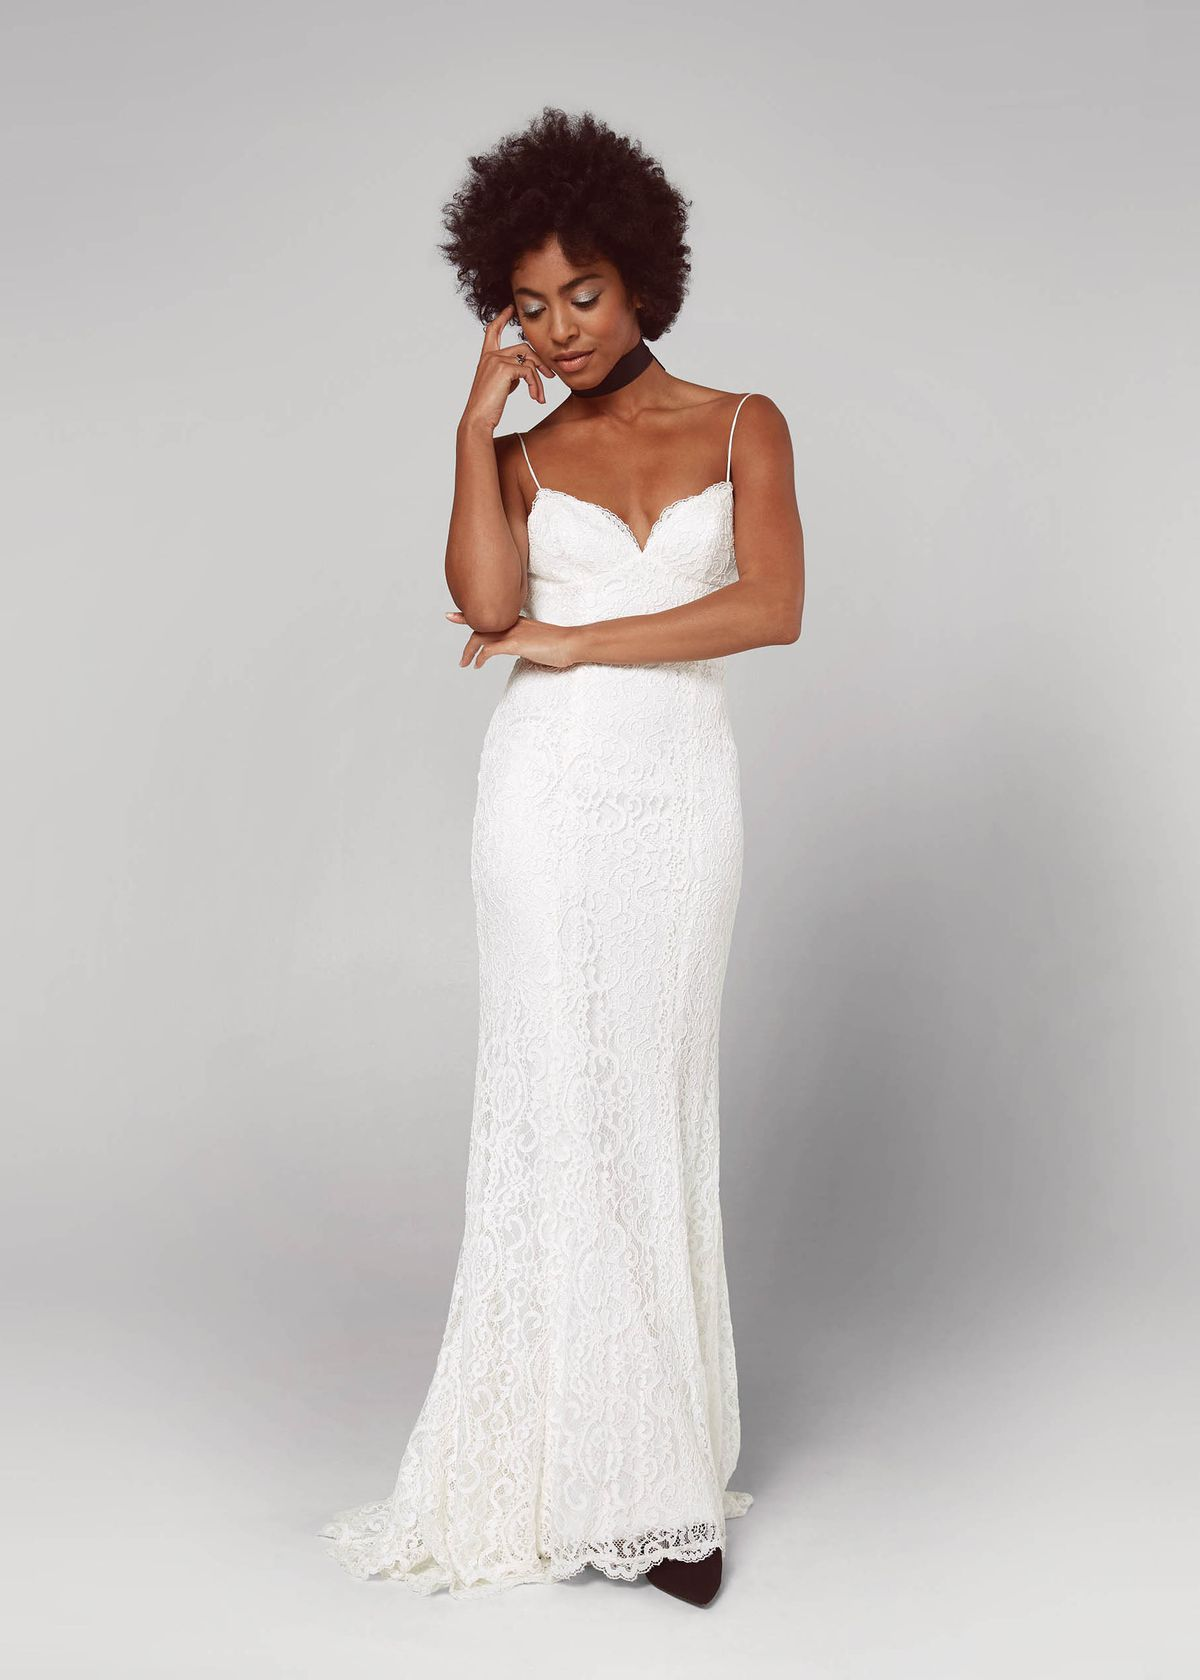 Where To Buy Affordable Wedding Dresses Vox